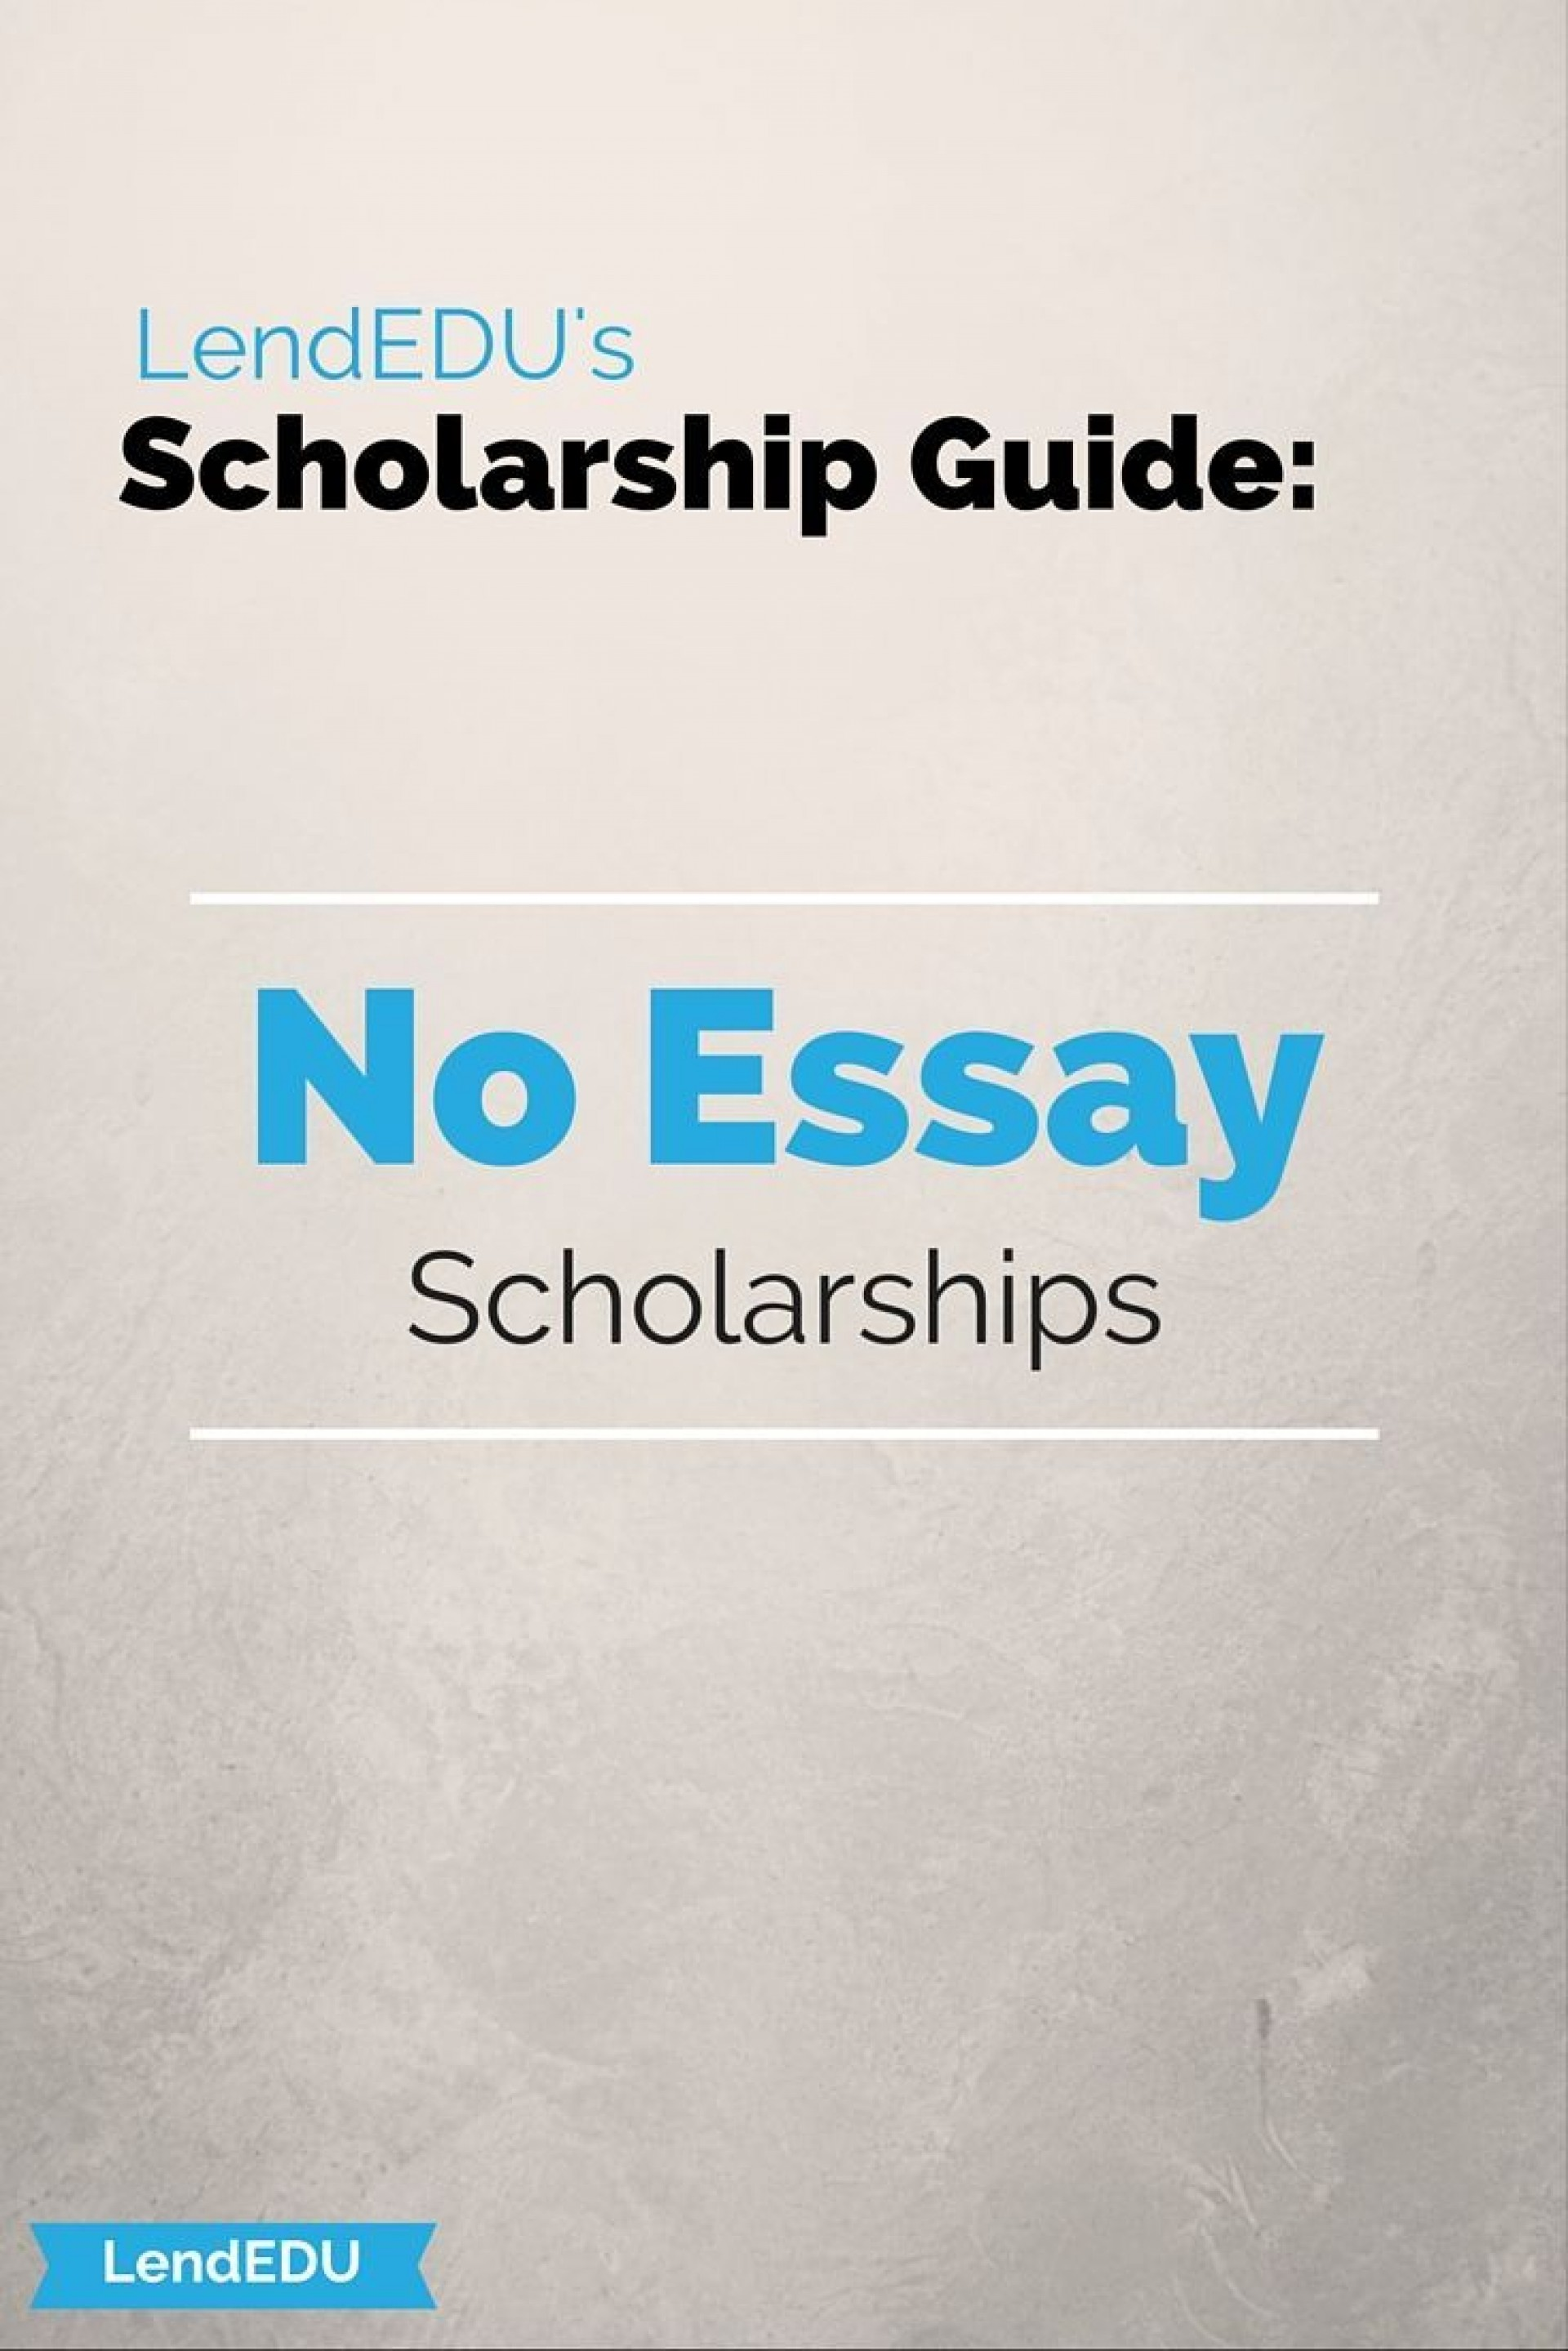 017 Essay Example Scholarship Awesome No For College Students Free Scholarships Required Hispanic 1920